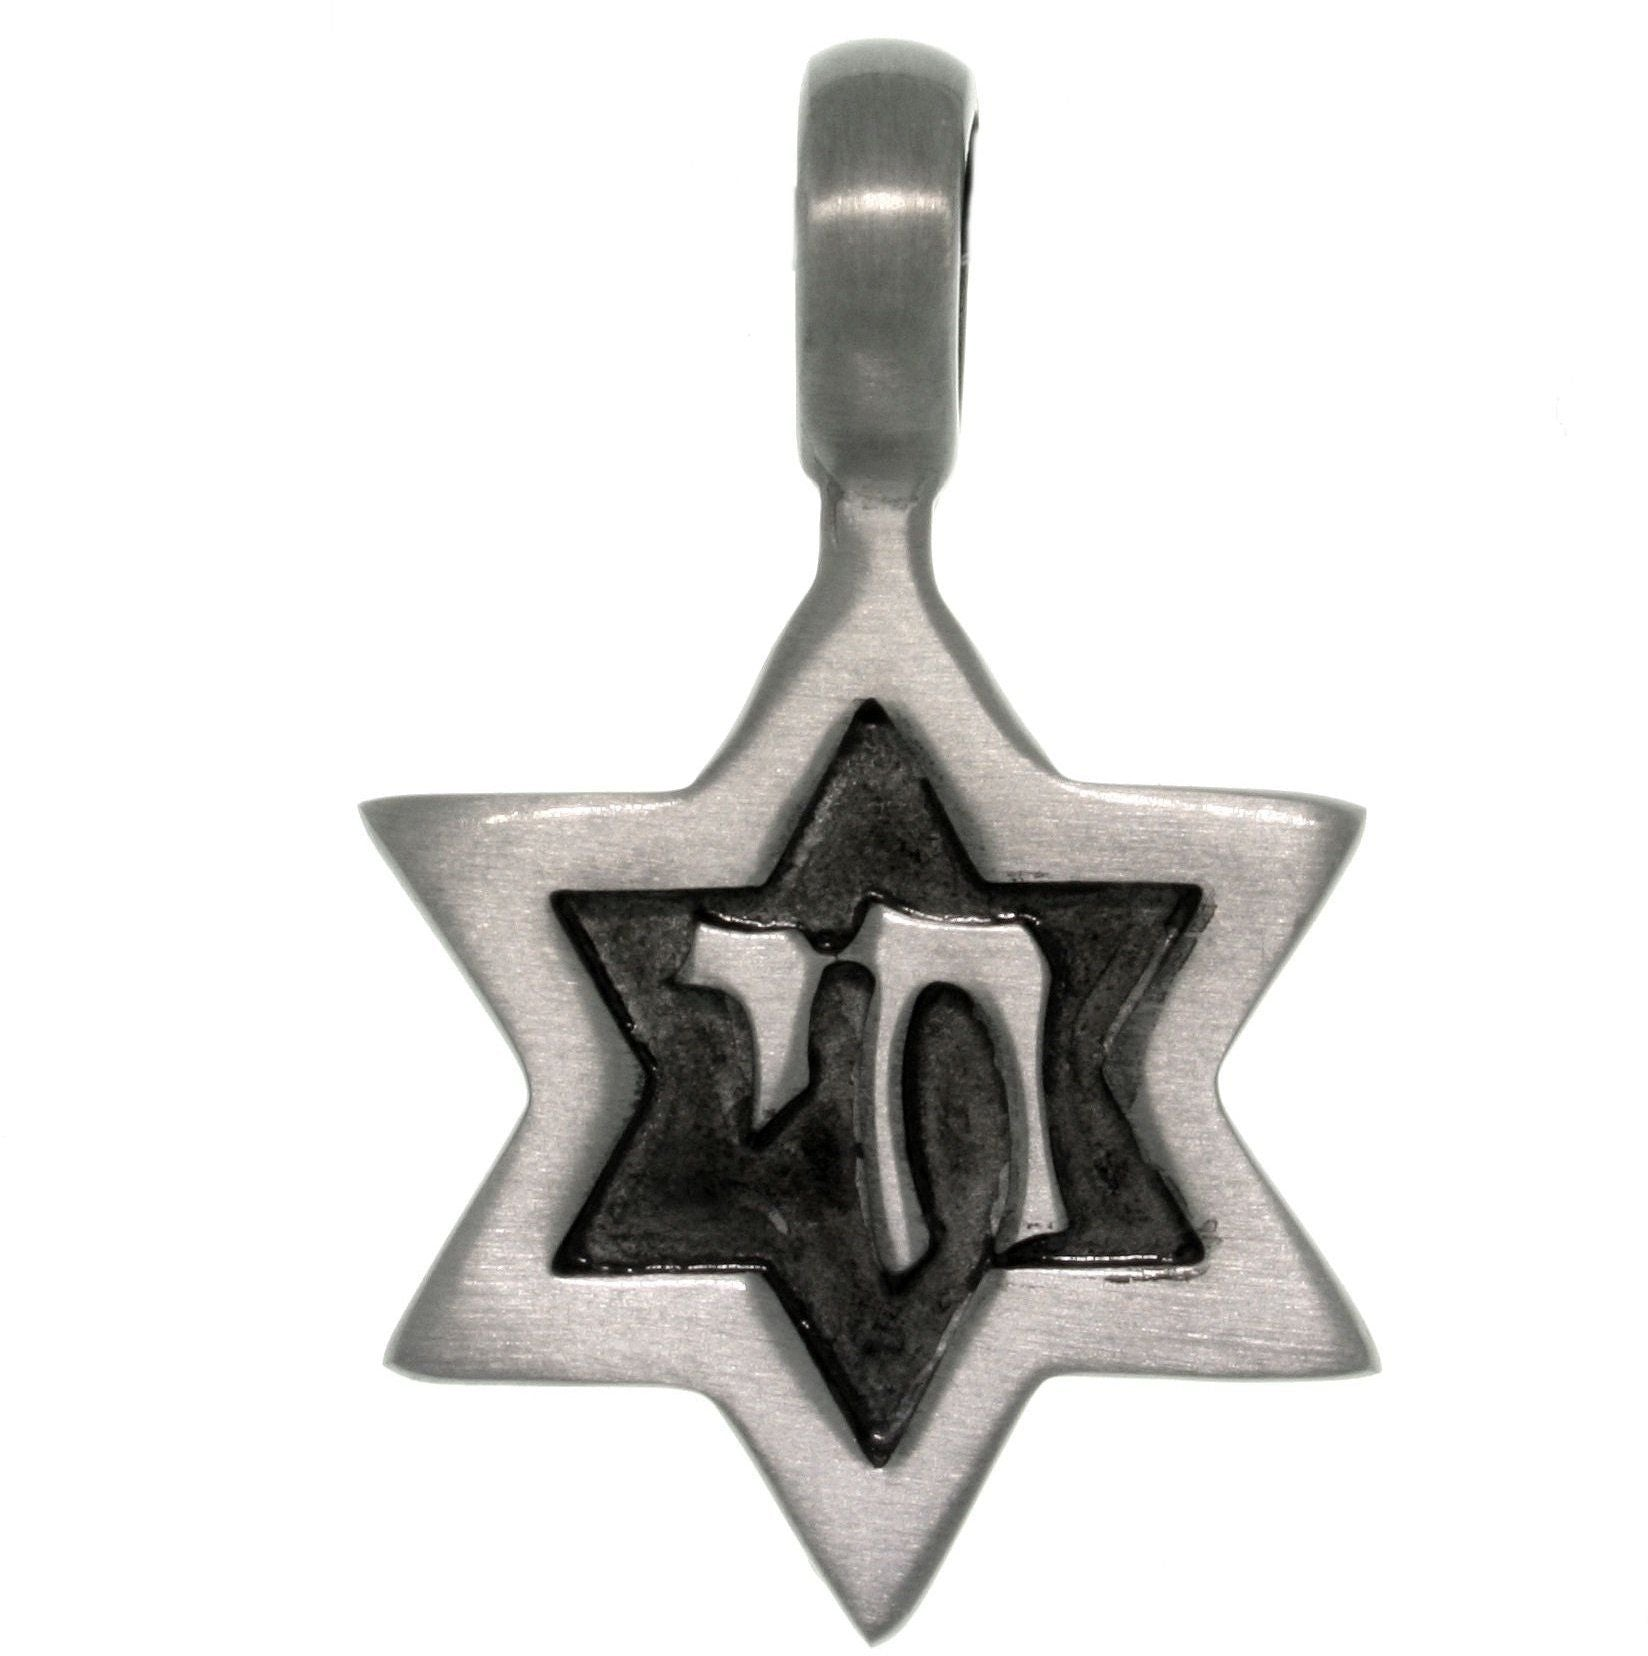 Chai symbol jewelry image collections symbol and sign ideas jewelry trends antiqued pewter star of david with chai symbol jewelry trends antiqued pewter star of buycottarizona